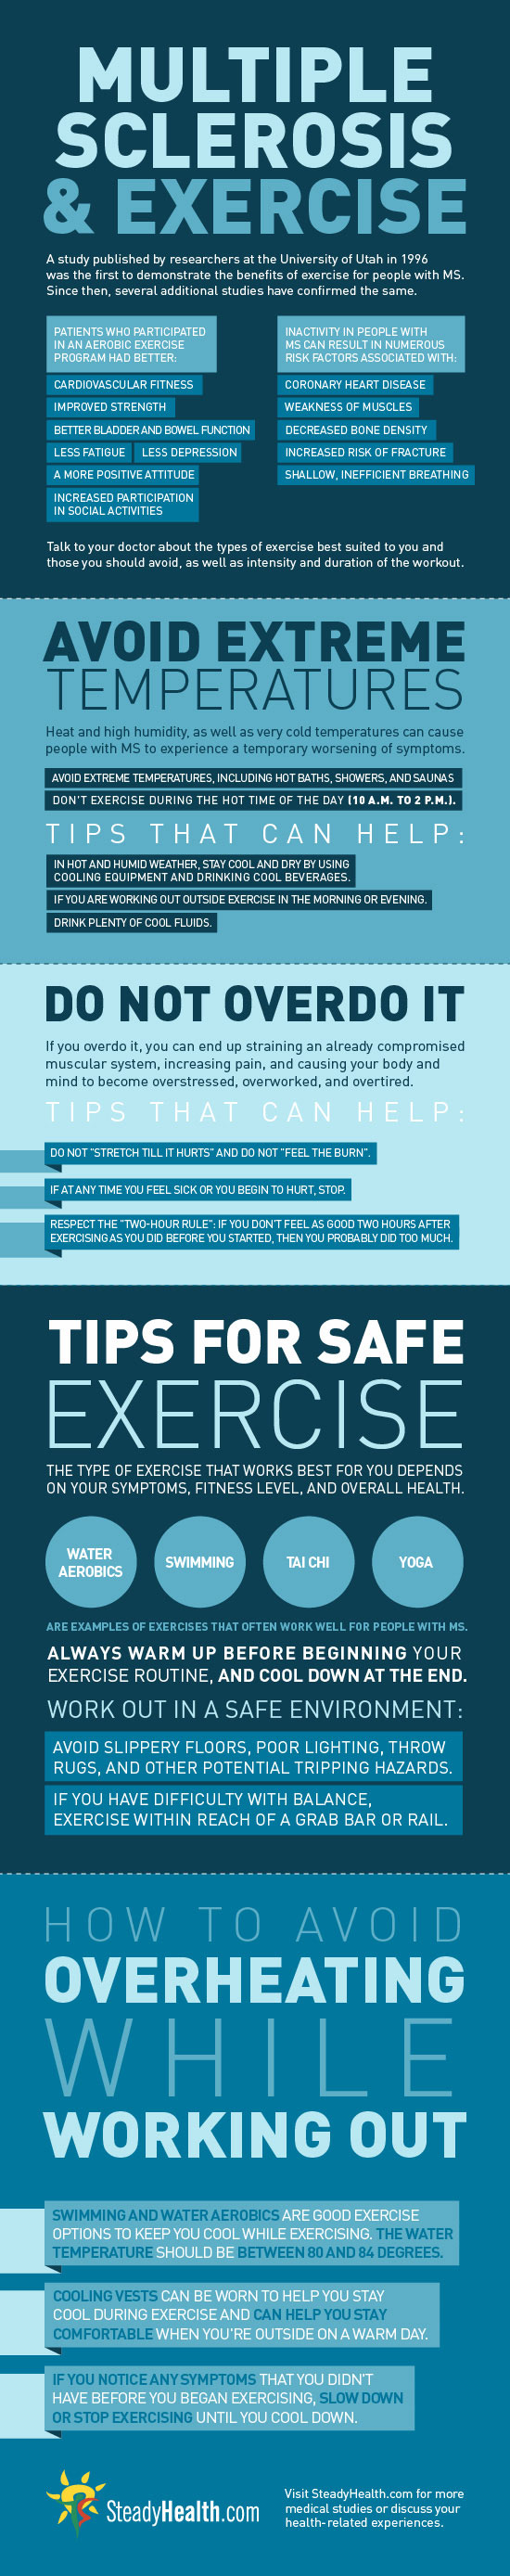 Multiple Sclerosis and Exercise